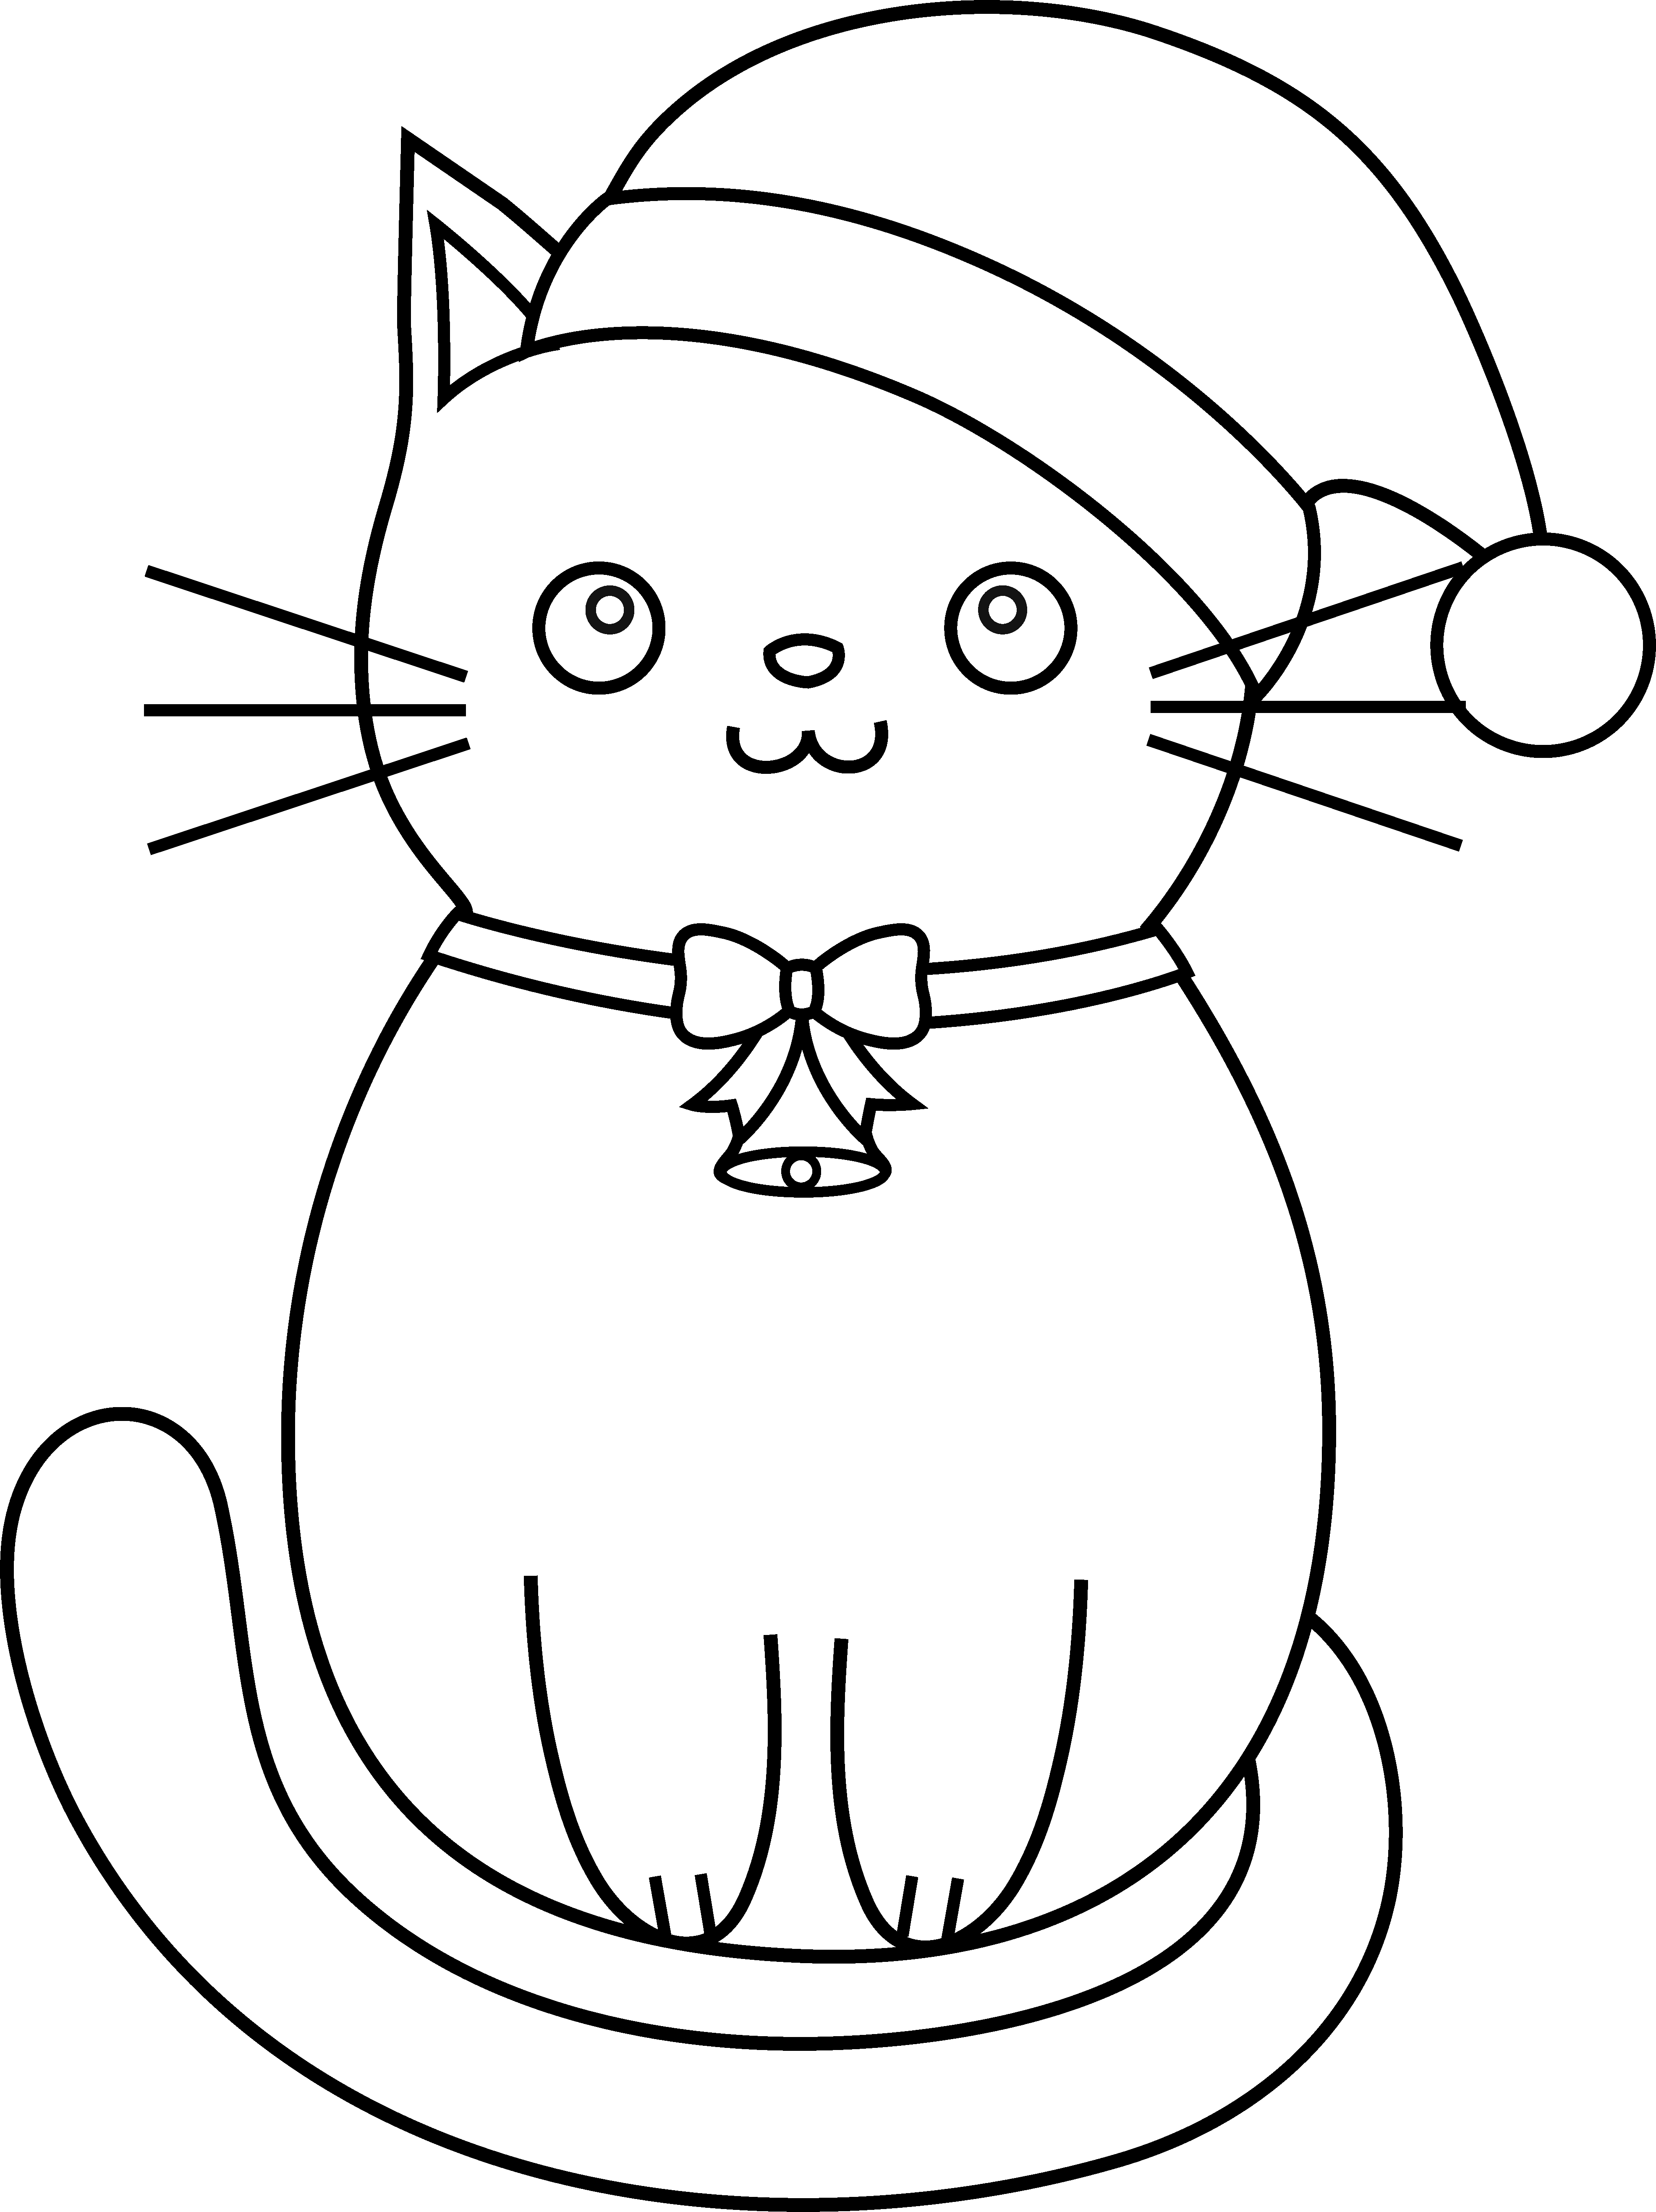 pictures of cats and kittens to color free printable cat coloring pages for kids of kittens to color and cats pictures